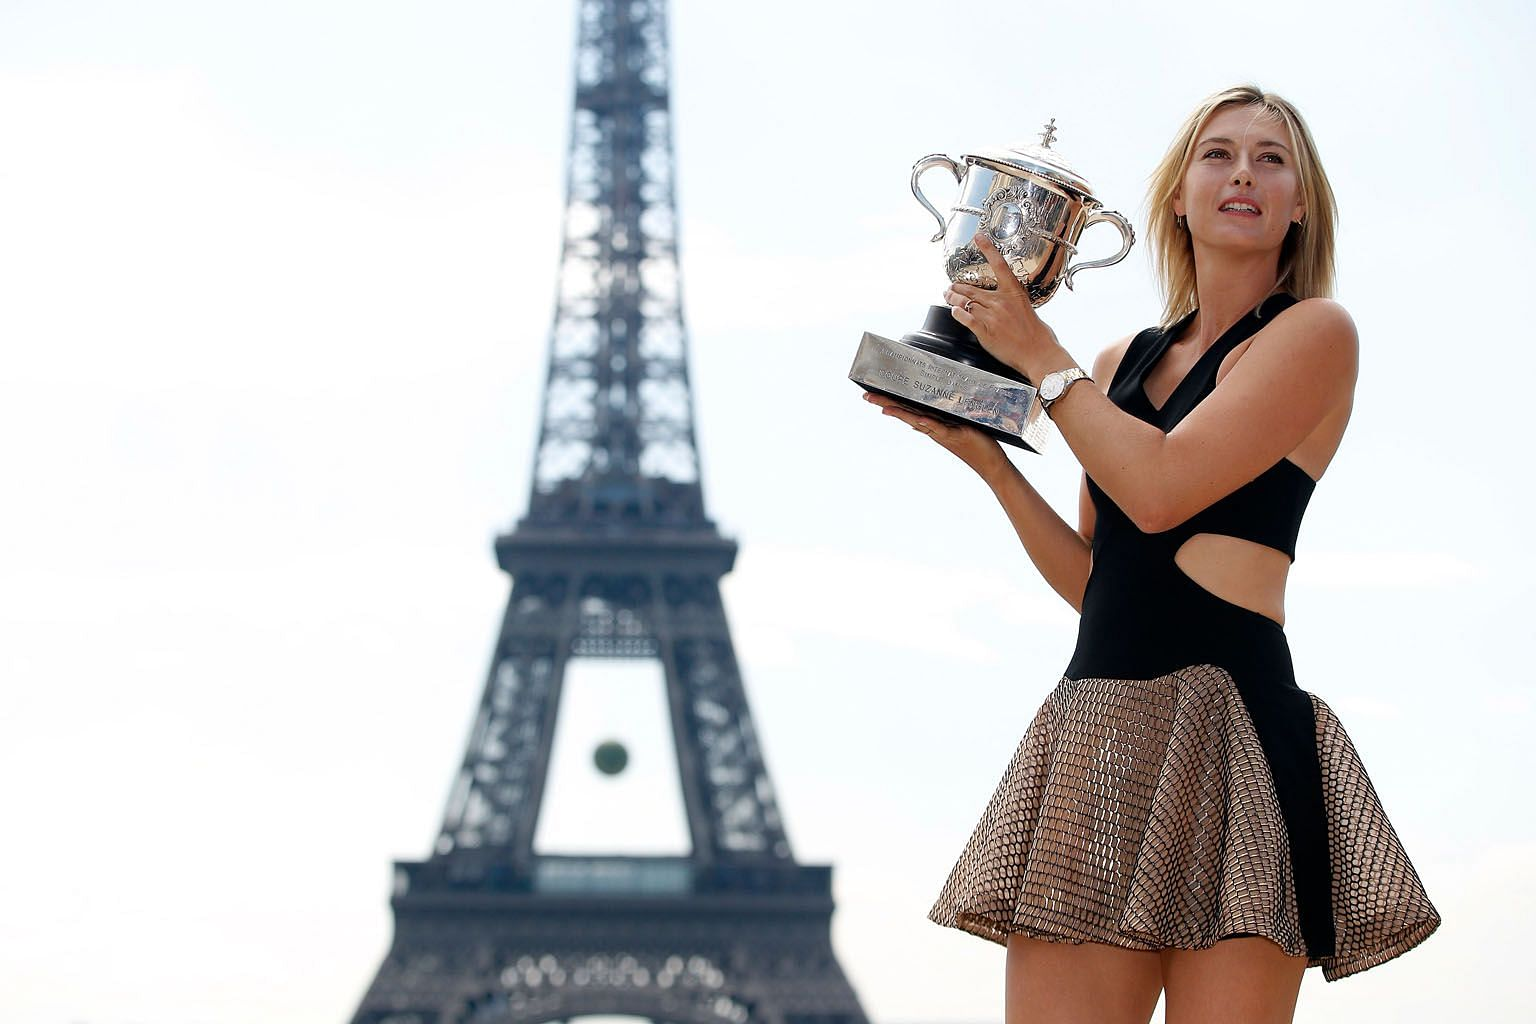 Maria Sharapova posing with the Suzanne Lenglen trophy near the Eiffel Tower after winning the 2014 French Open. PHOTOS: EPA-EFE, AGENCE FRANCE-PRESSE